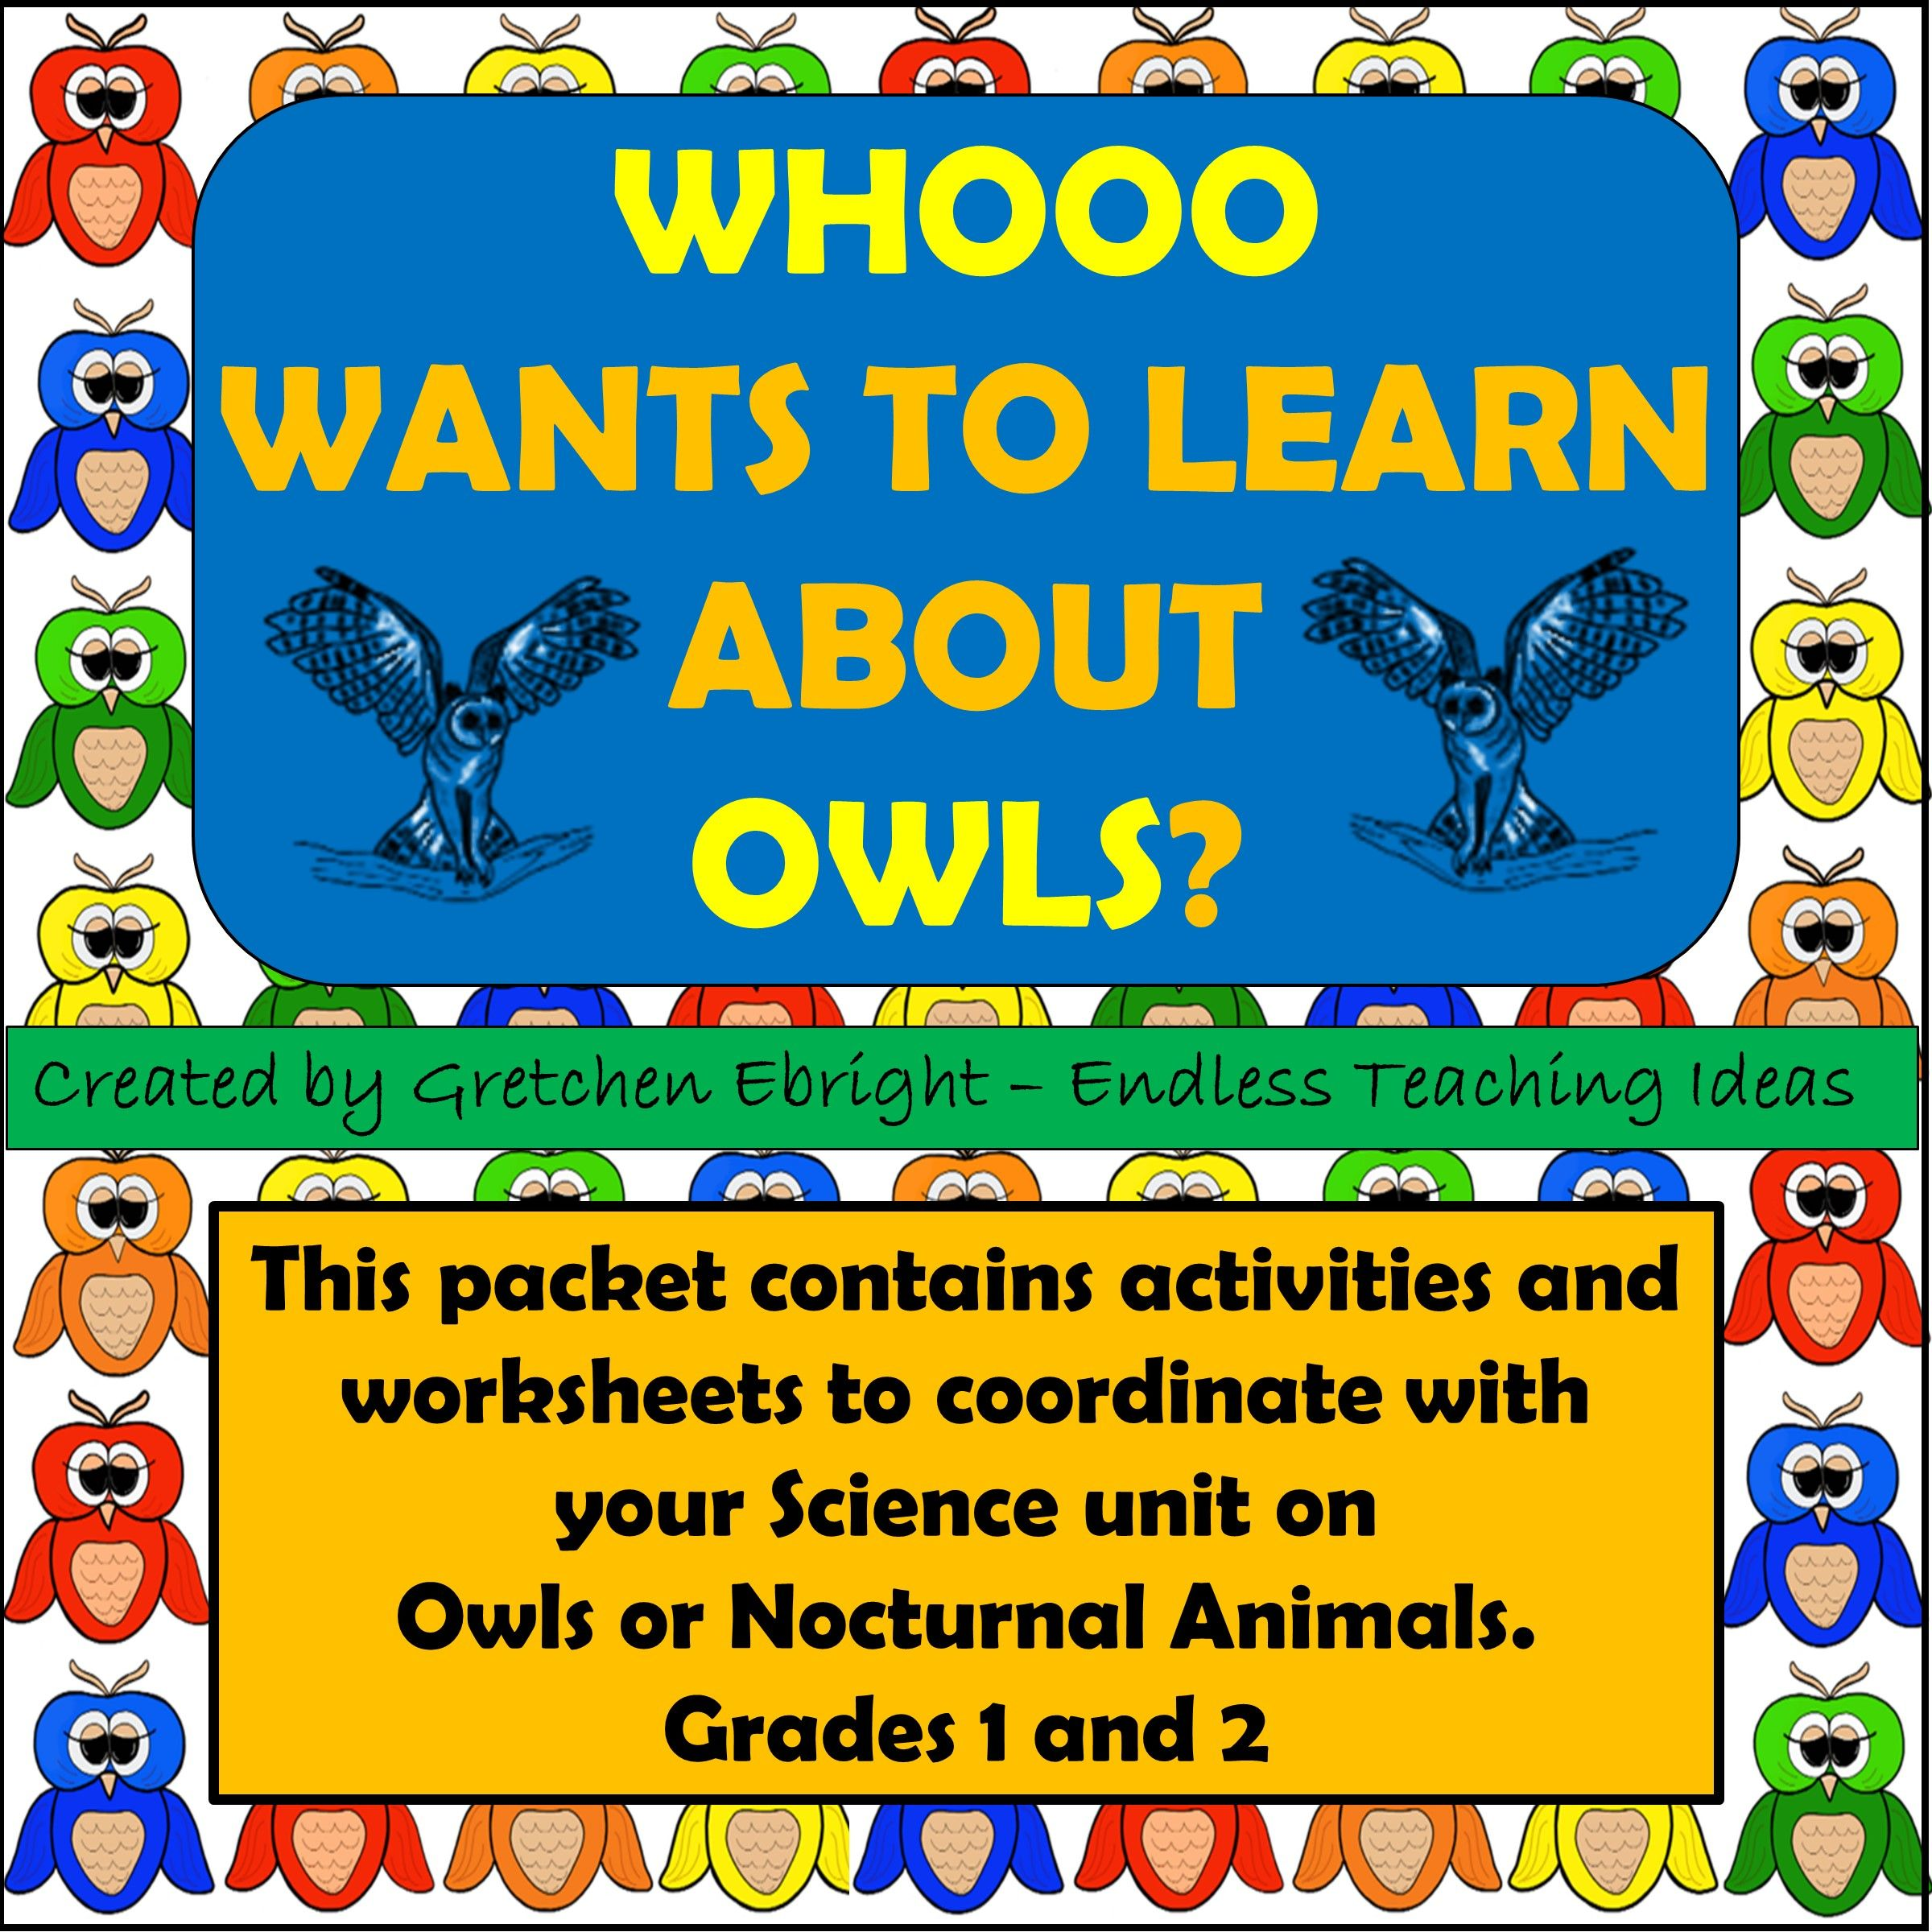 Whooo Wants To Learn About Owls